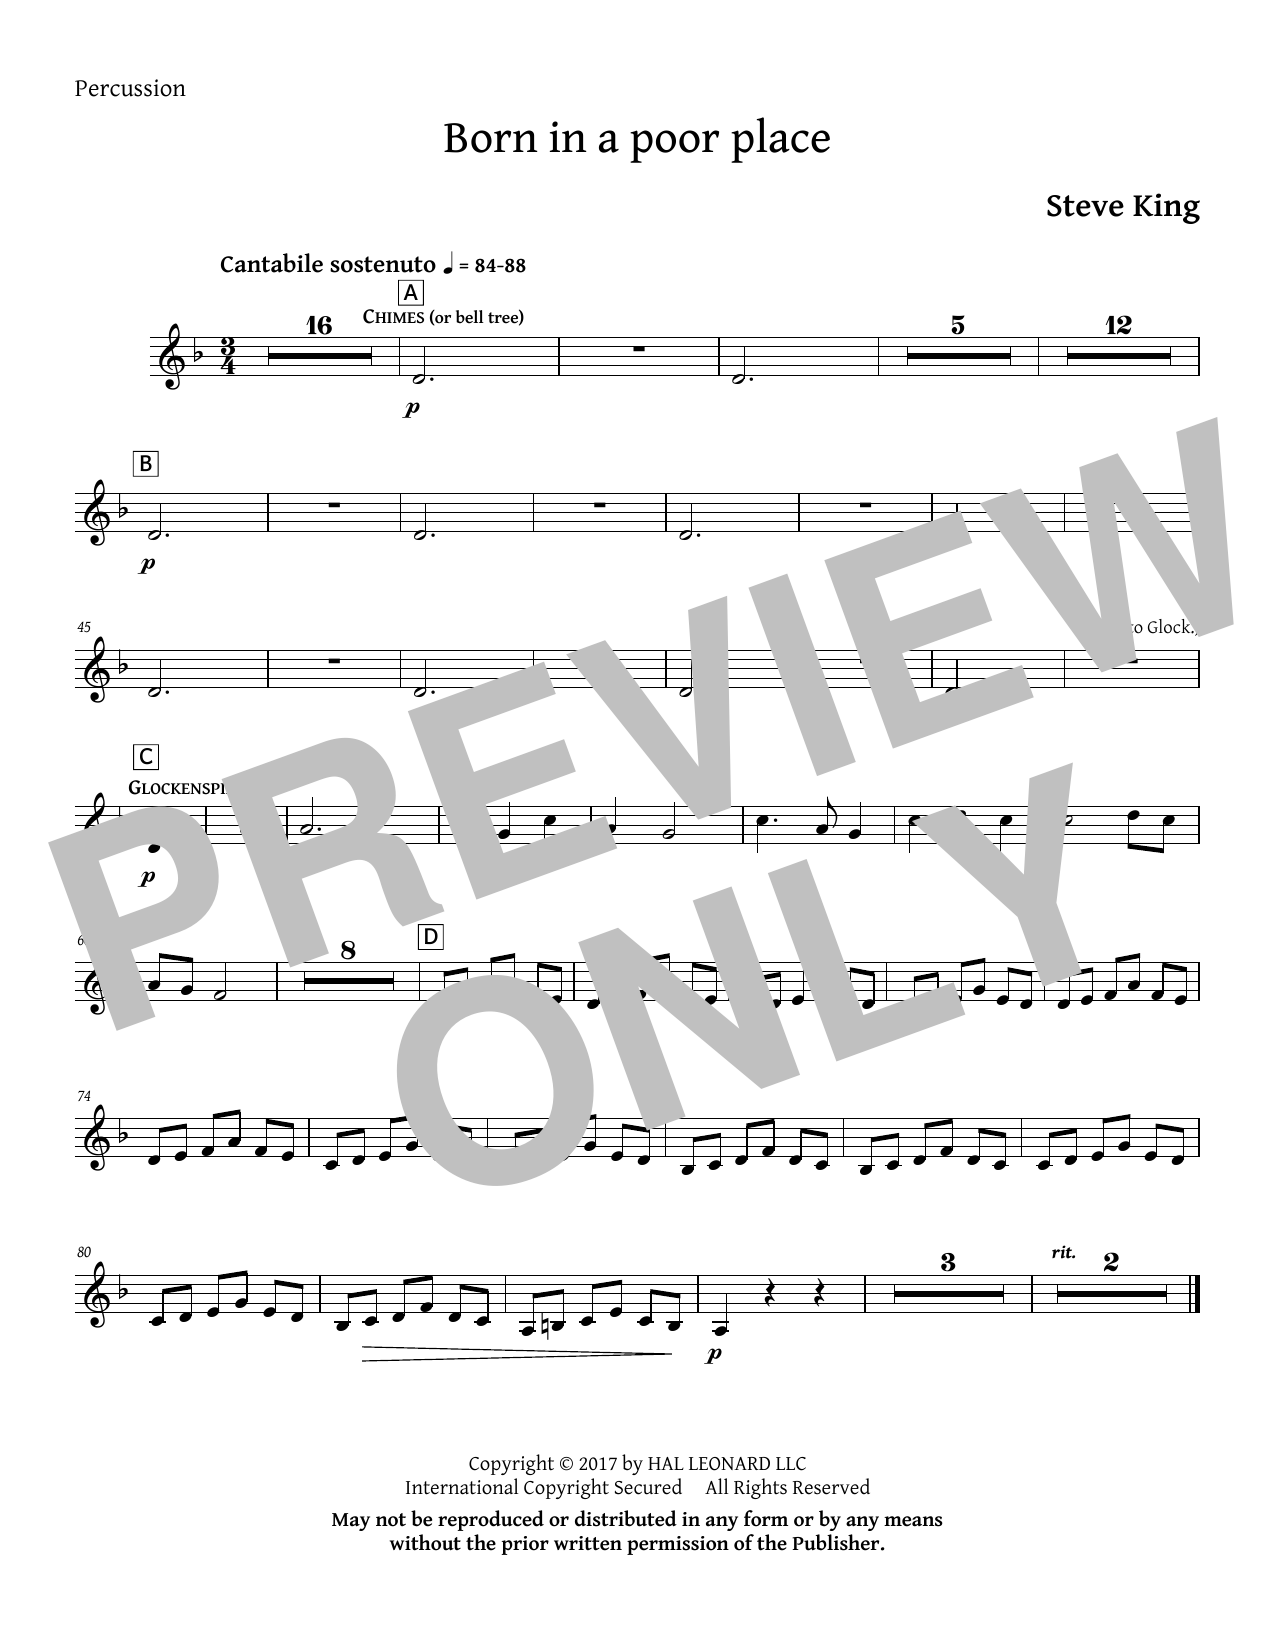 Born in a Poor Place - Percussion Sheet Music